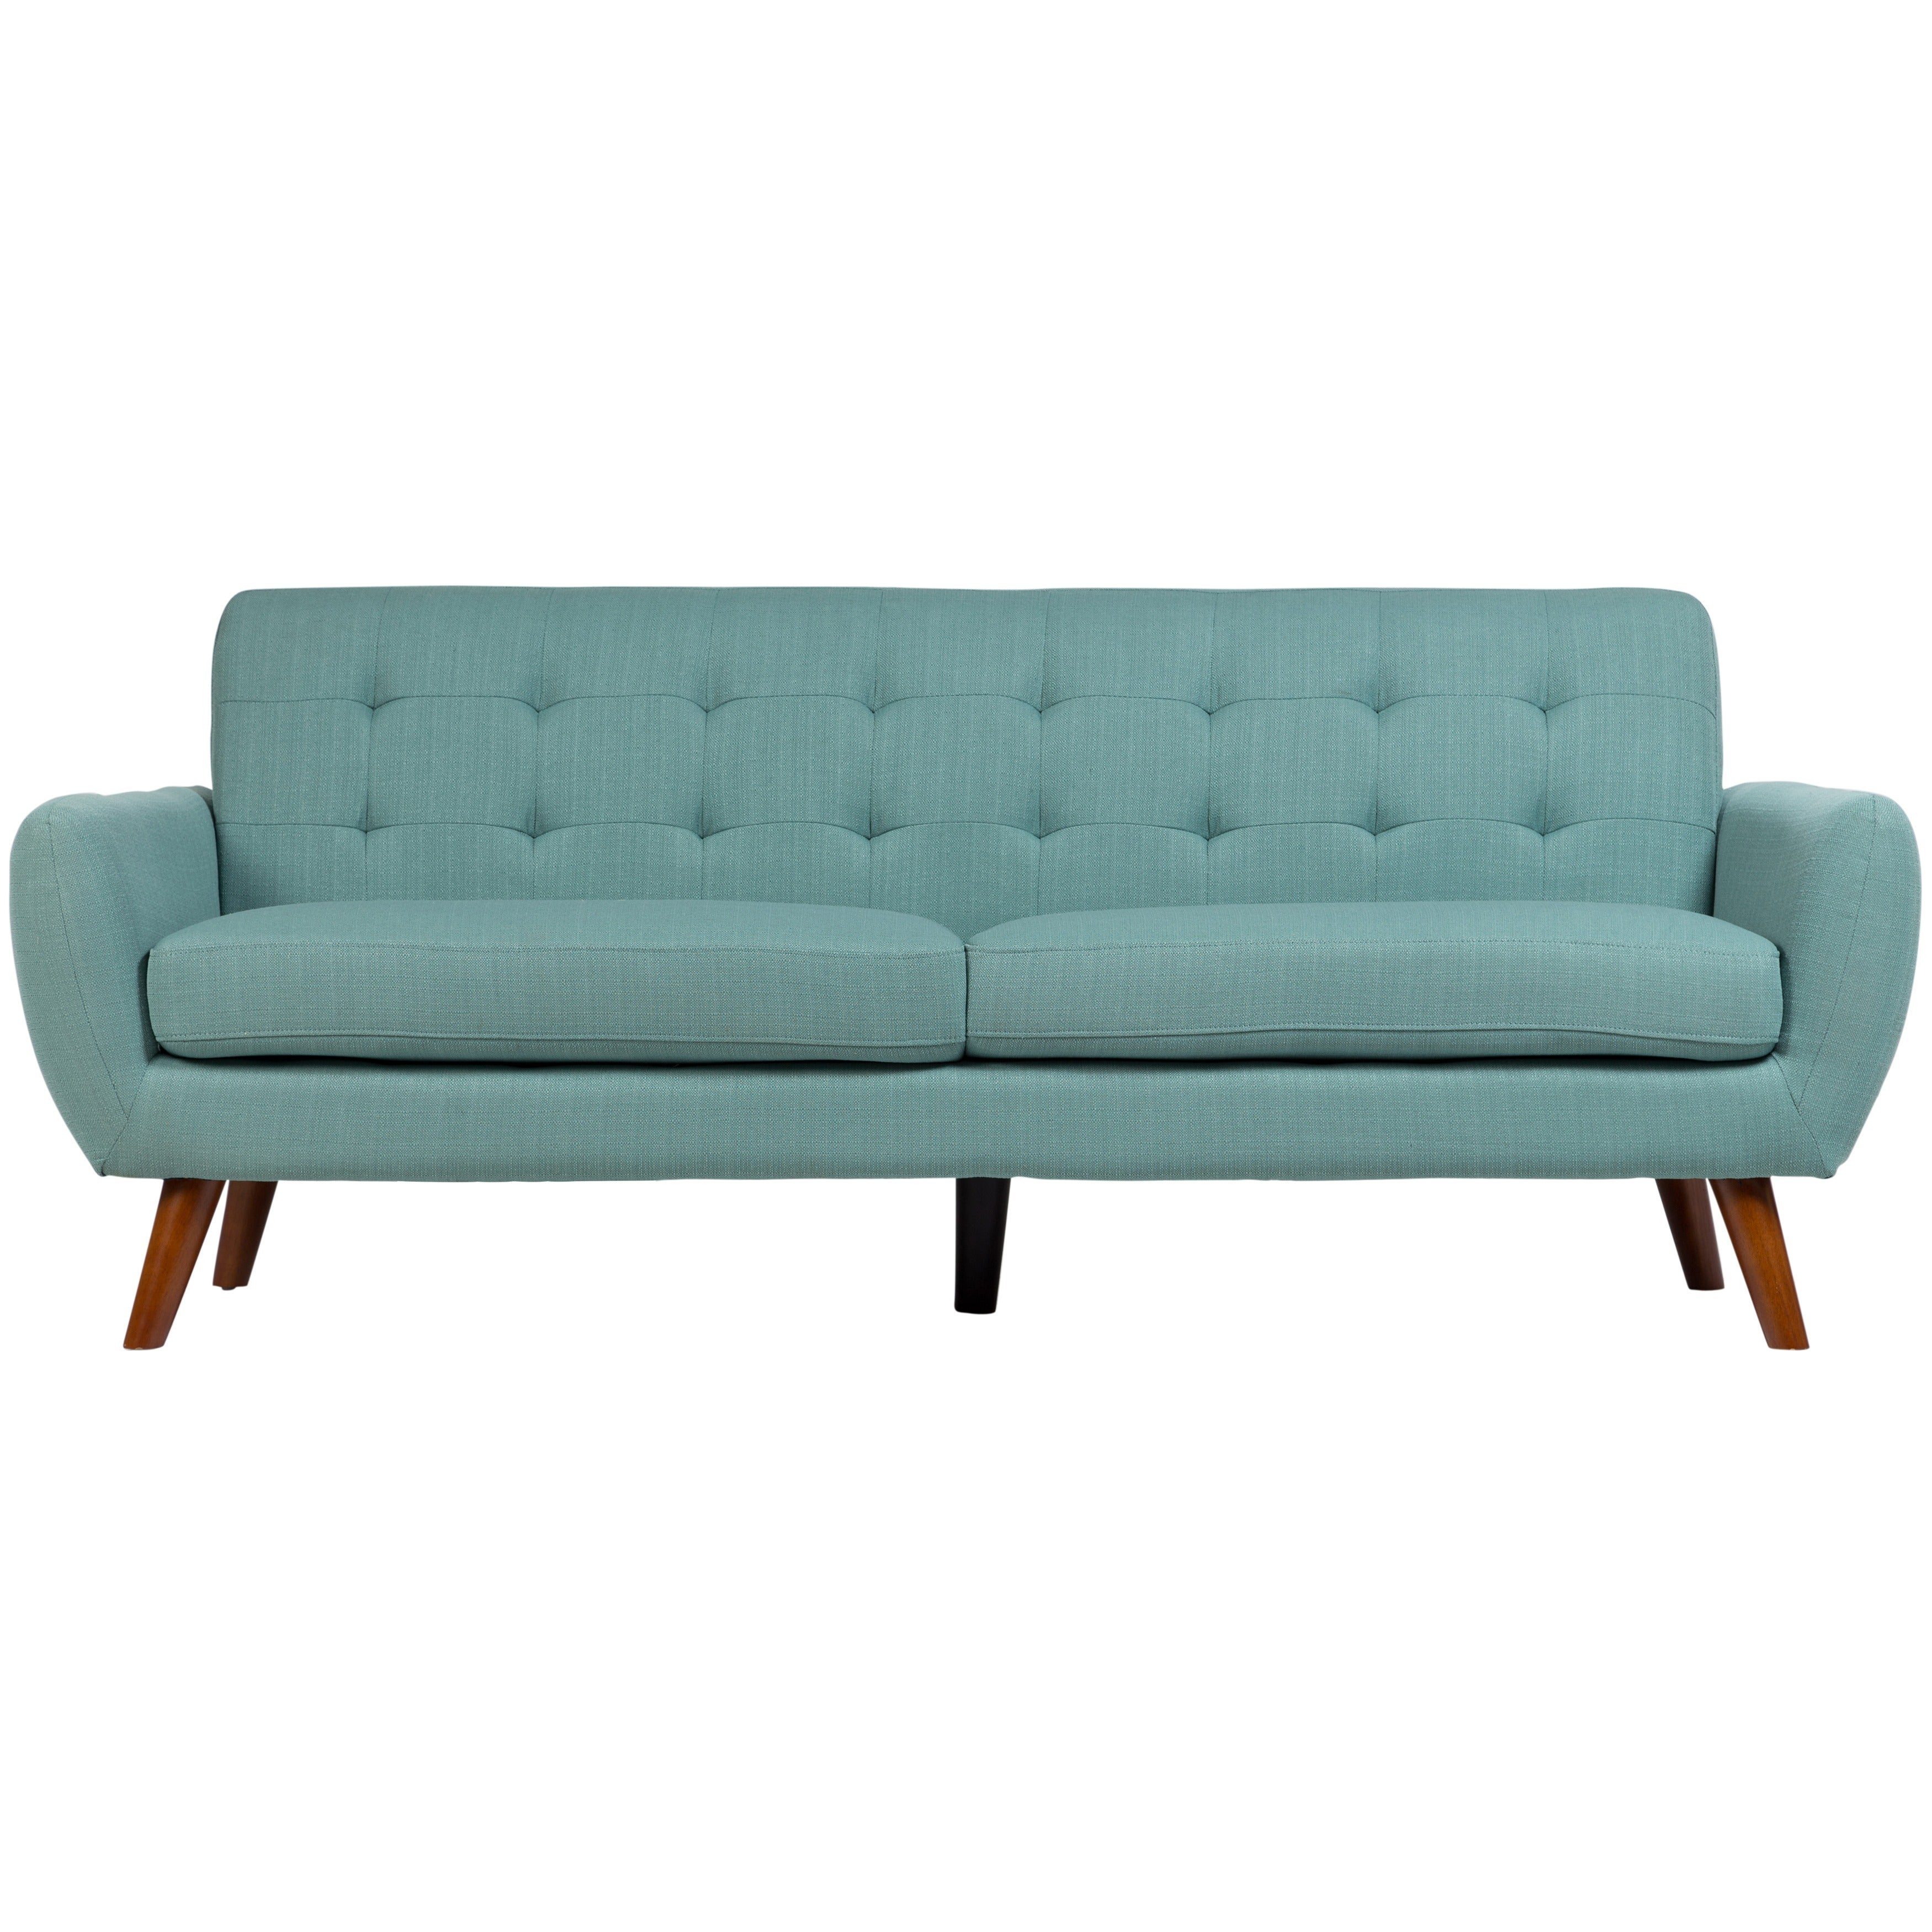 Shop Sitswell Daphne Teal Mid Century Modern Tufted Sofa On Sale